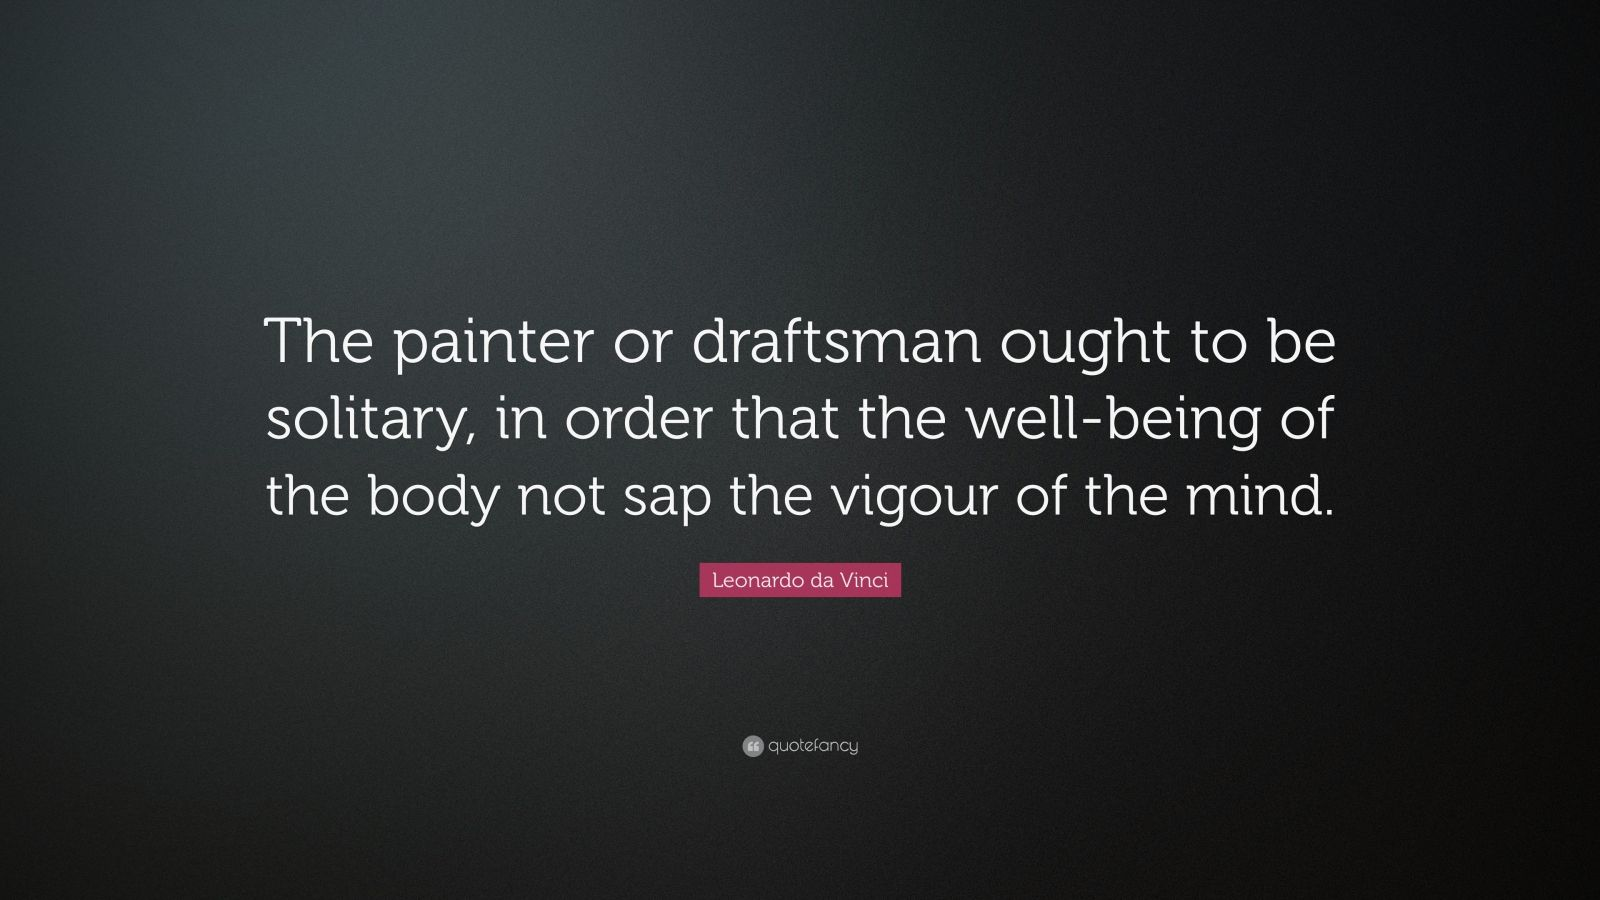 """Leonardo da Vinci Quote: """"The painter or draftsman ought to be solitary, in order that the well-being of the body not sap the vigour of the mind."""""""